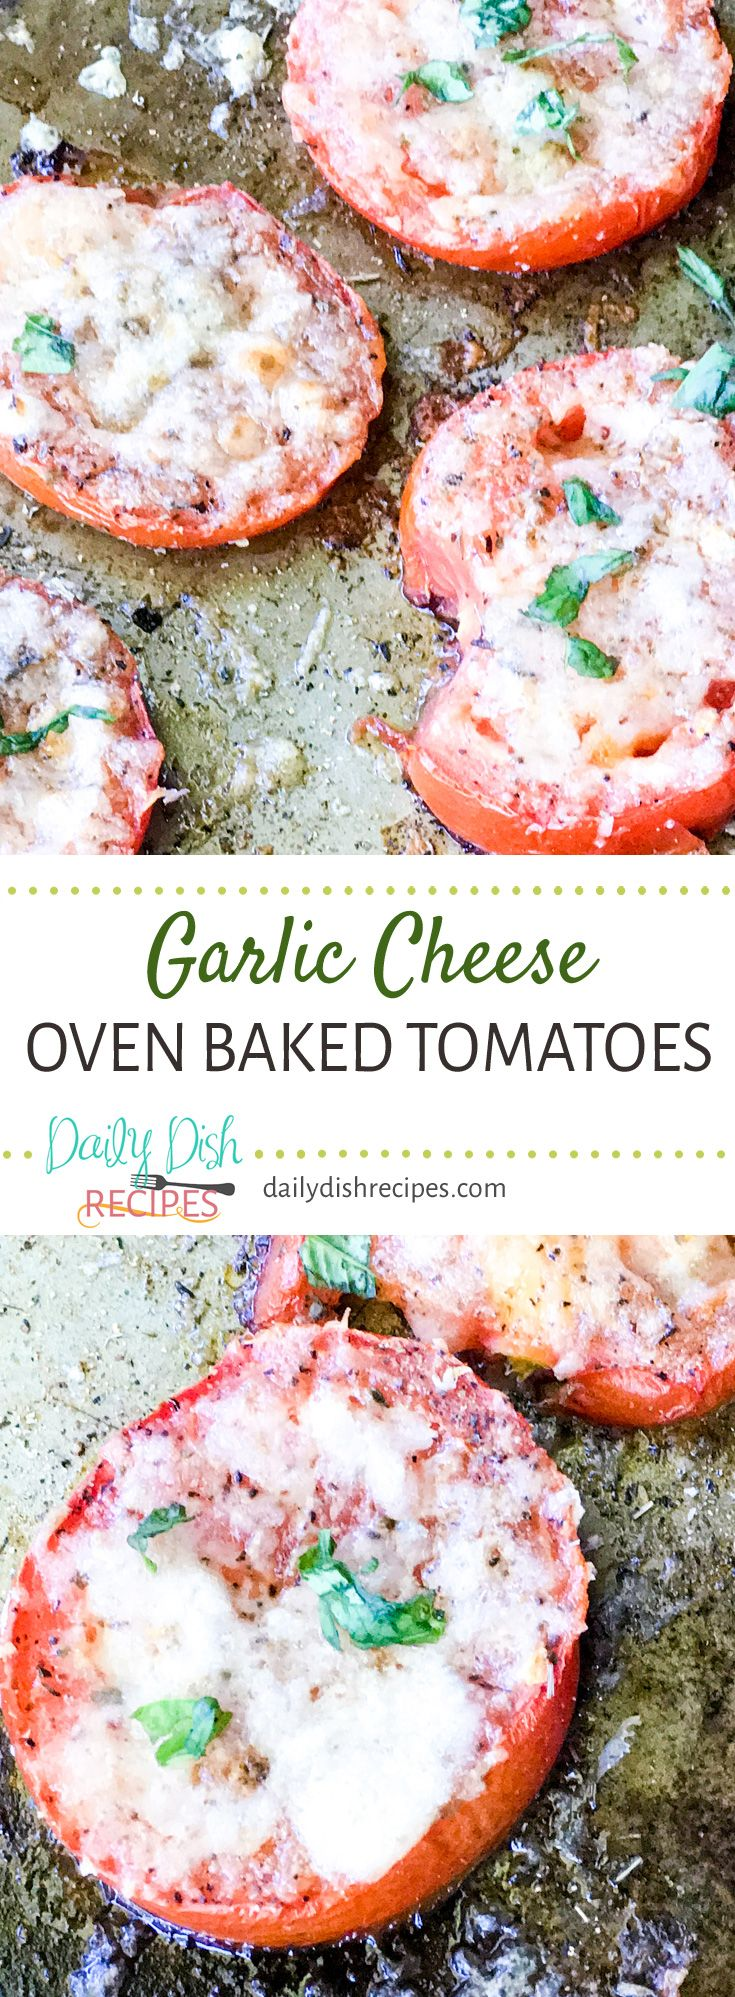 These Garlic Cheese Oven Baked Tomatoes are the bo…Edit description